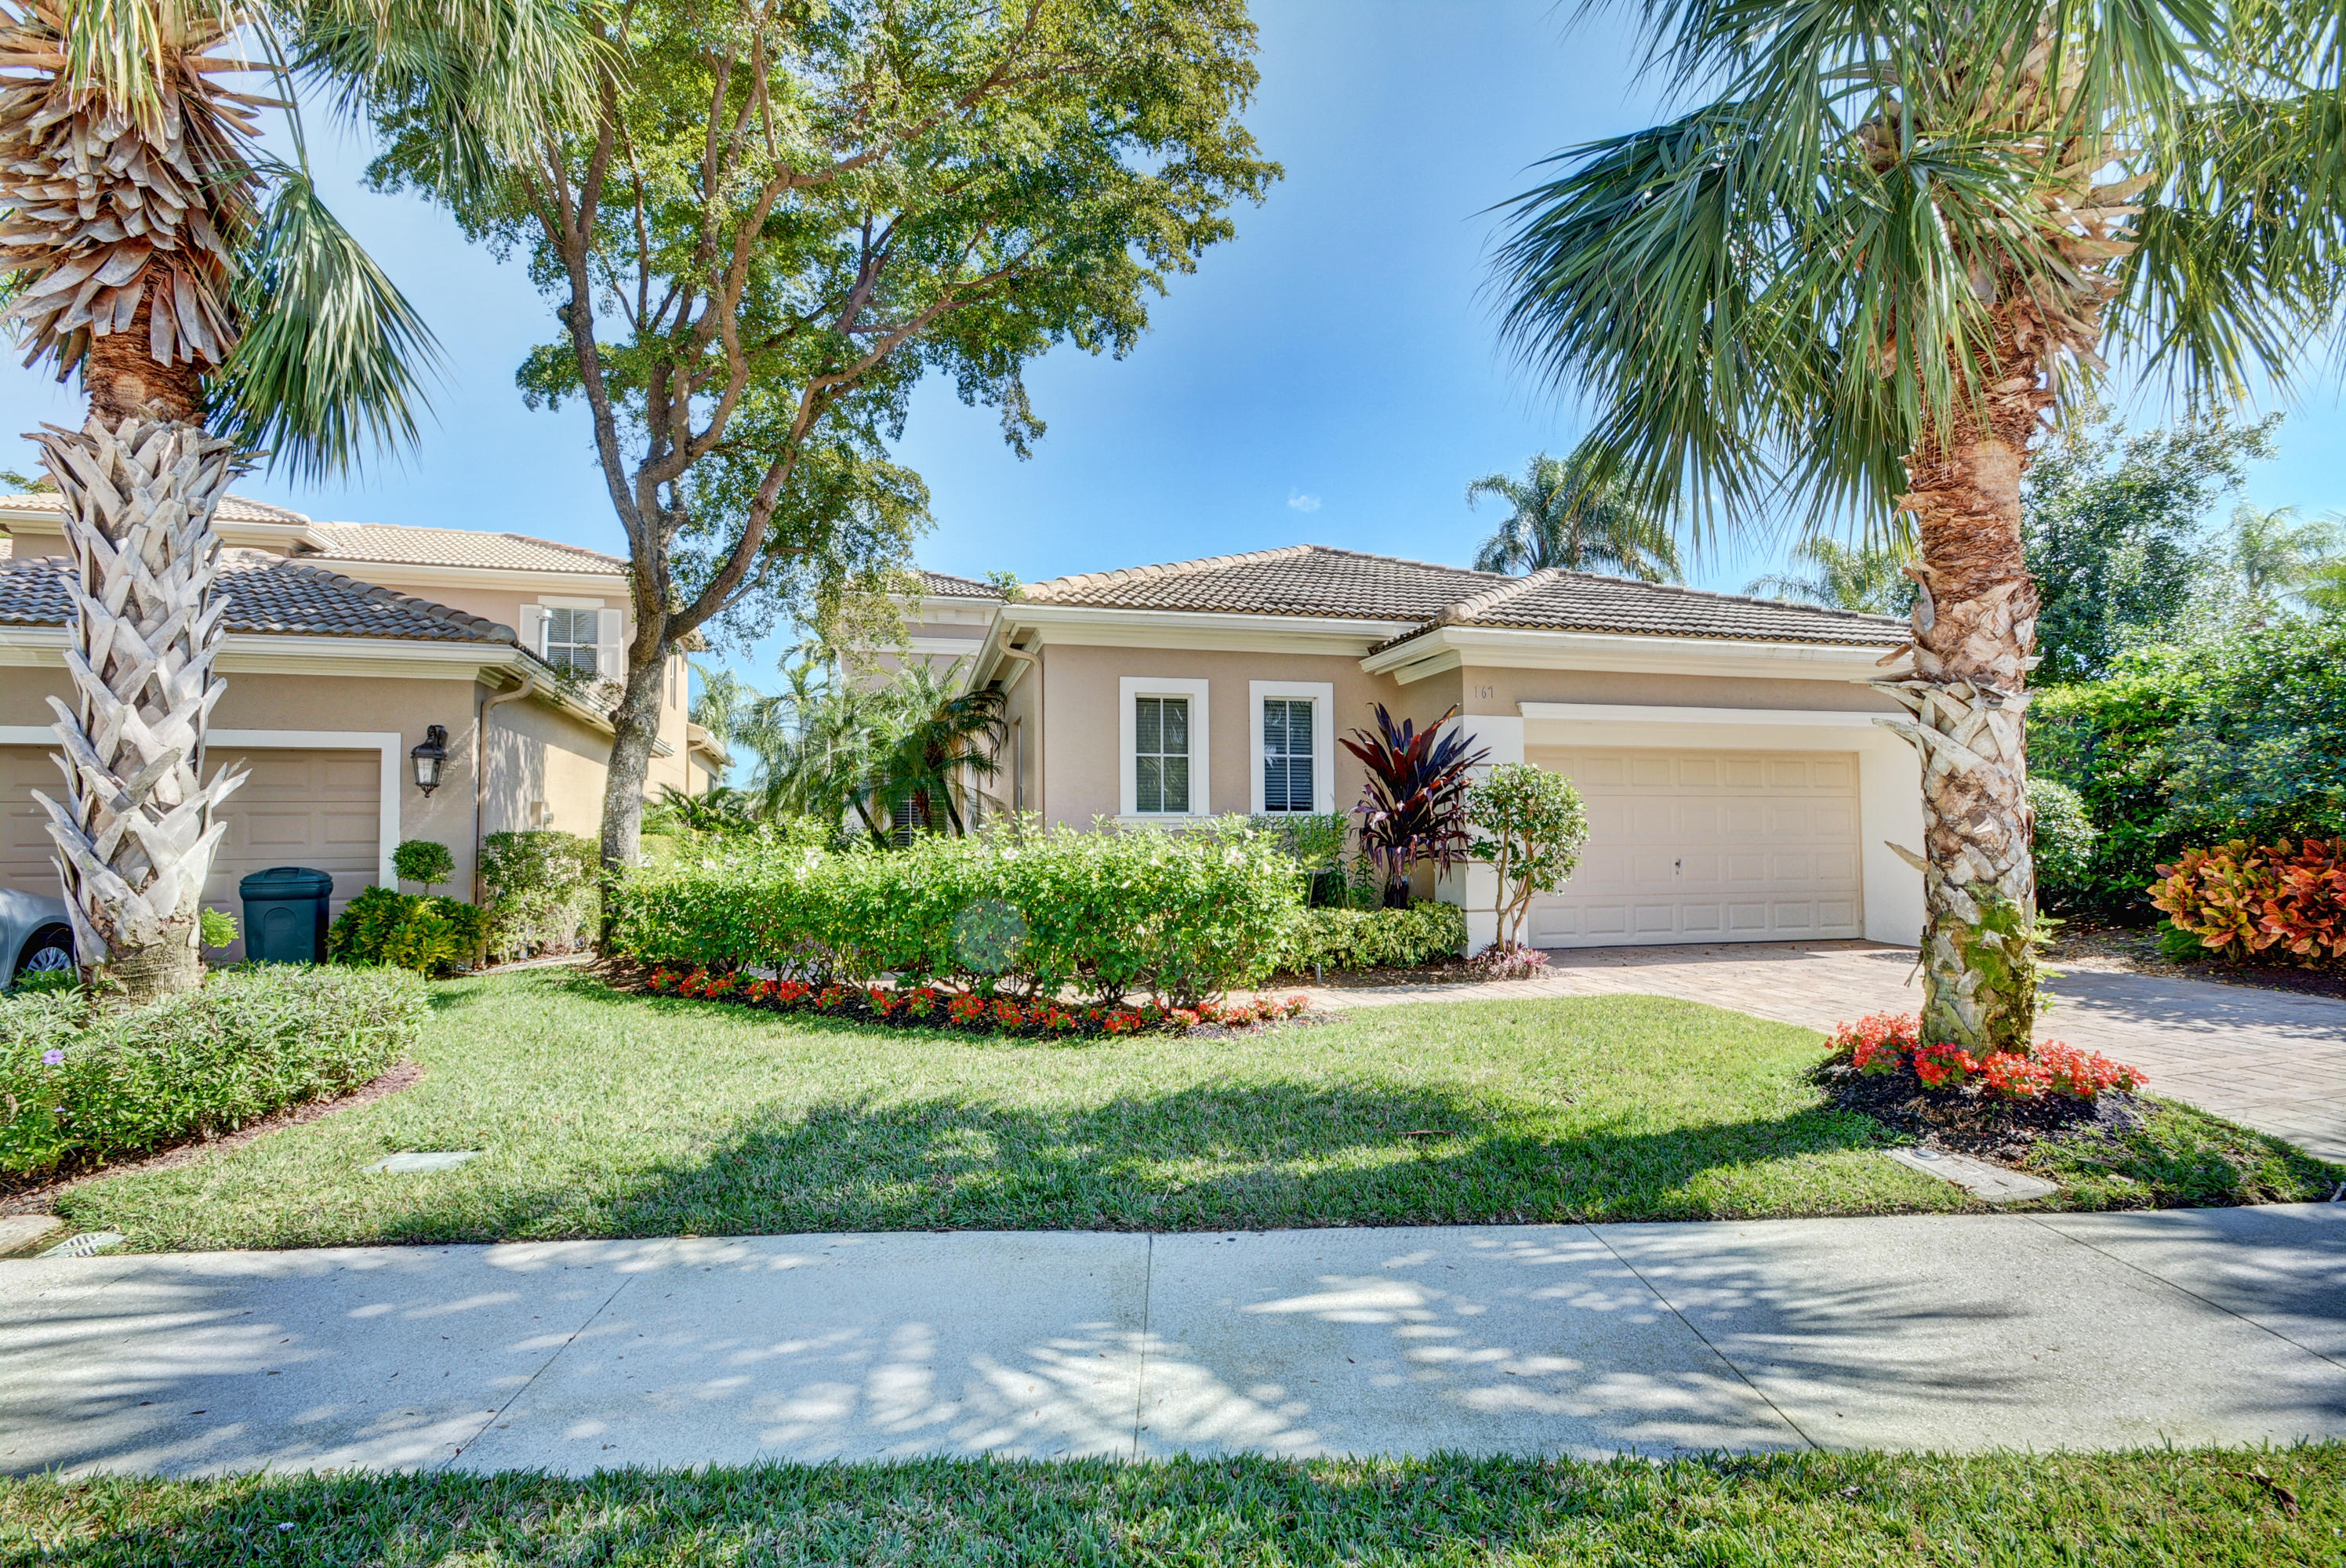 167 Orchid Cay Drive Palm Beach Gardens, FL 33418 small photo 1